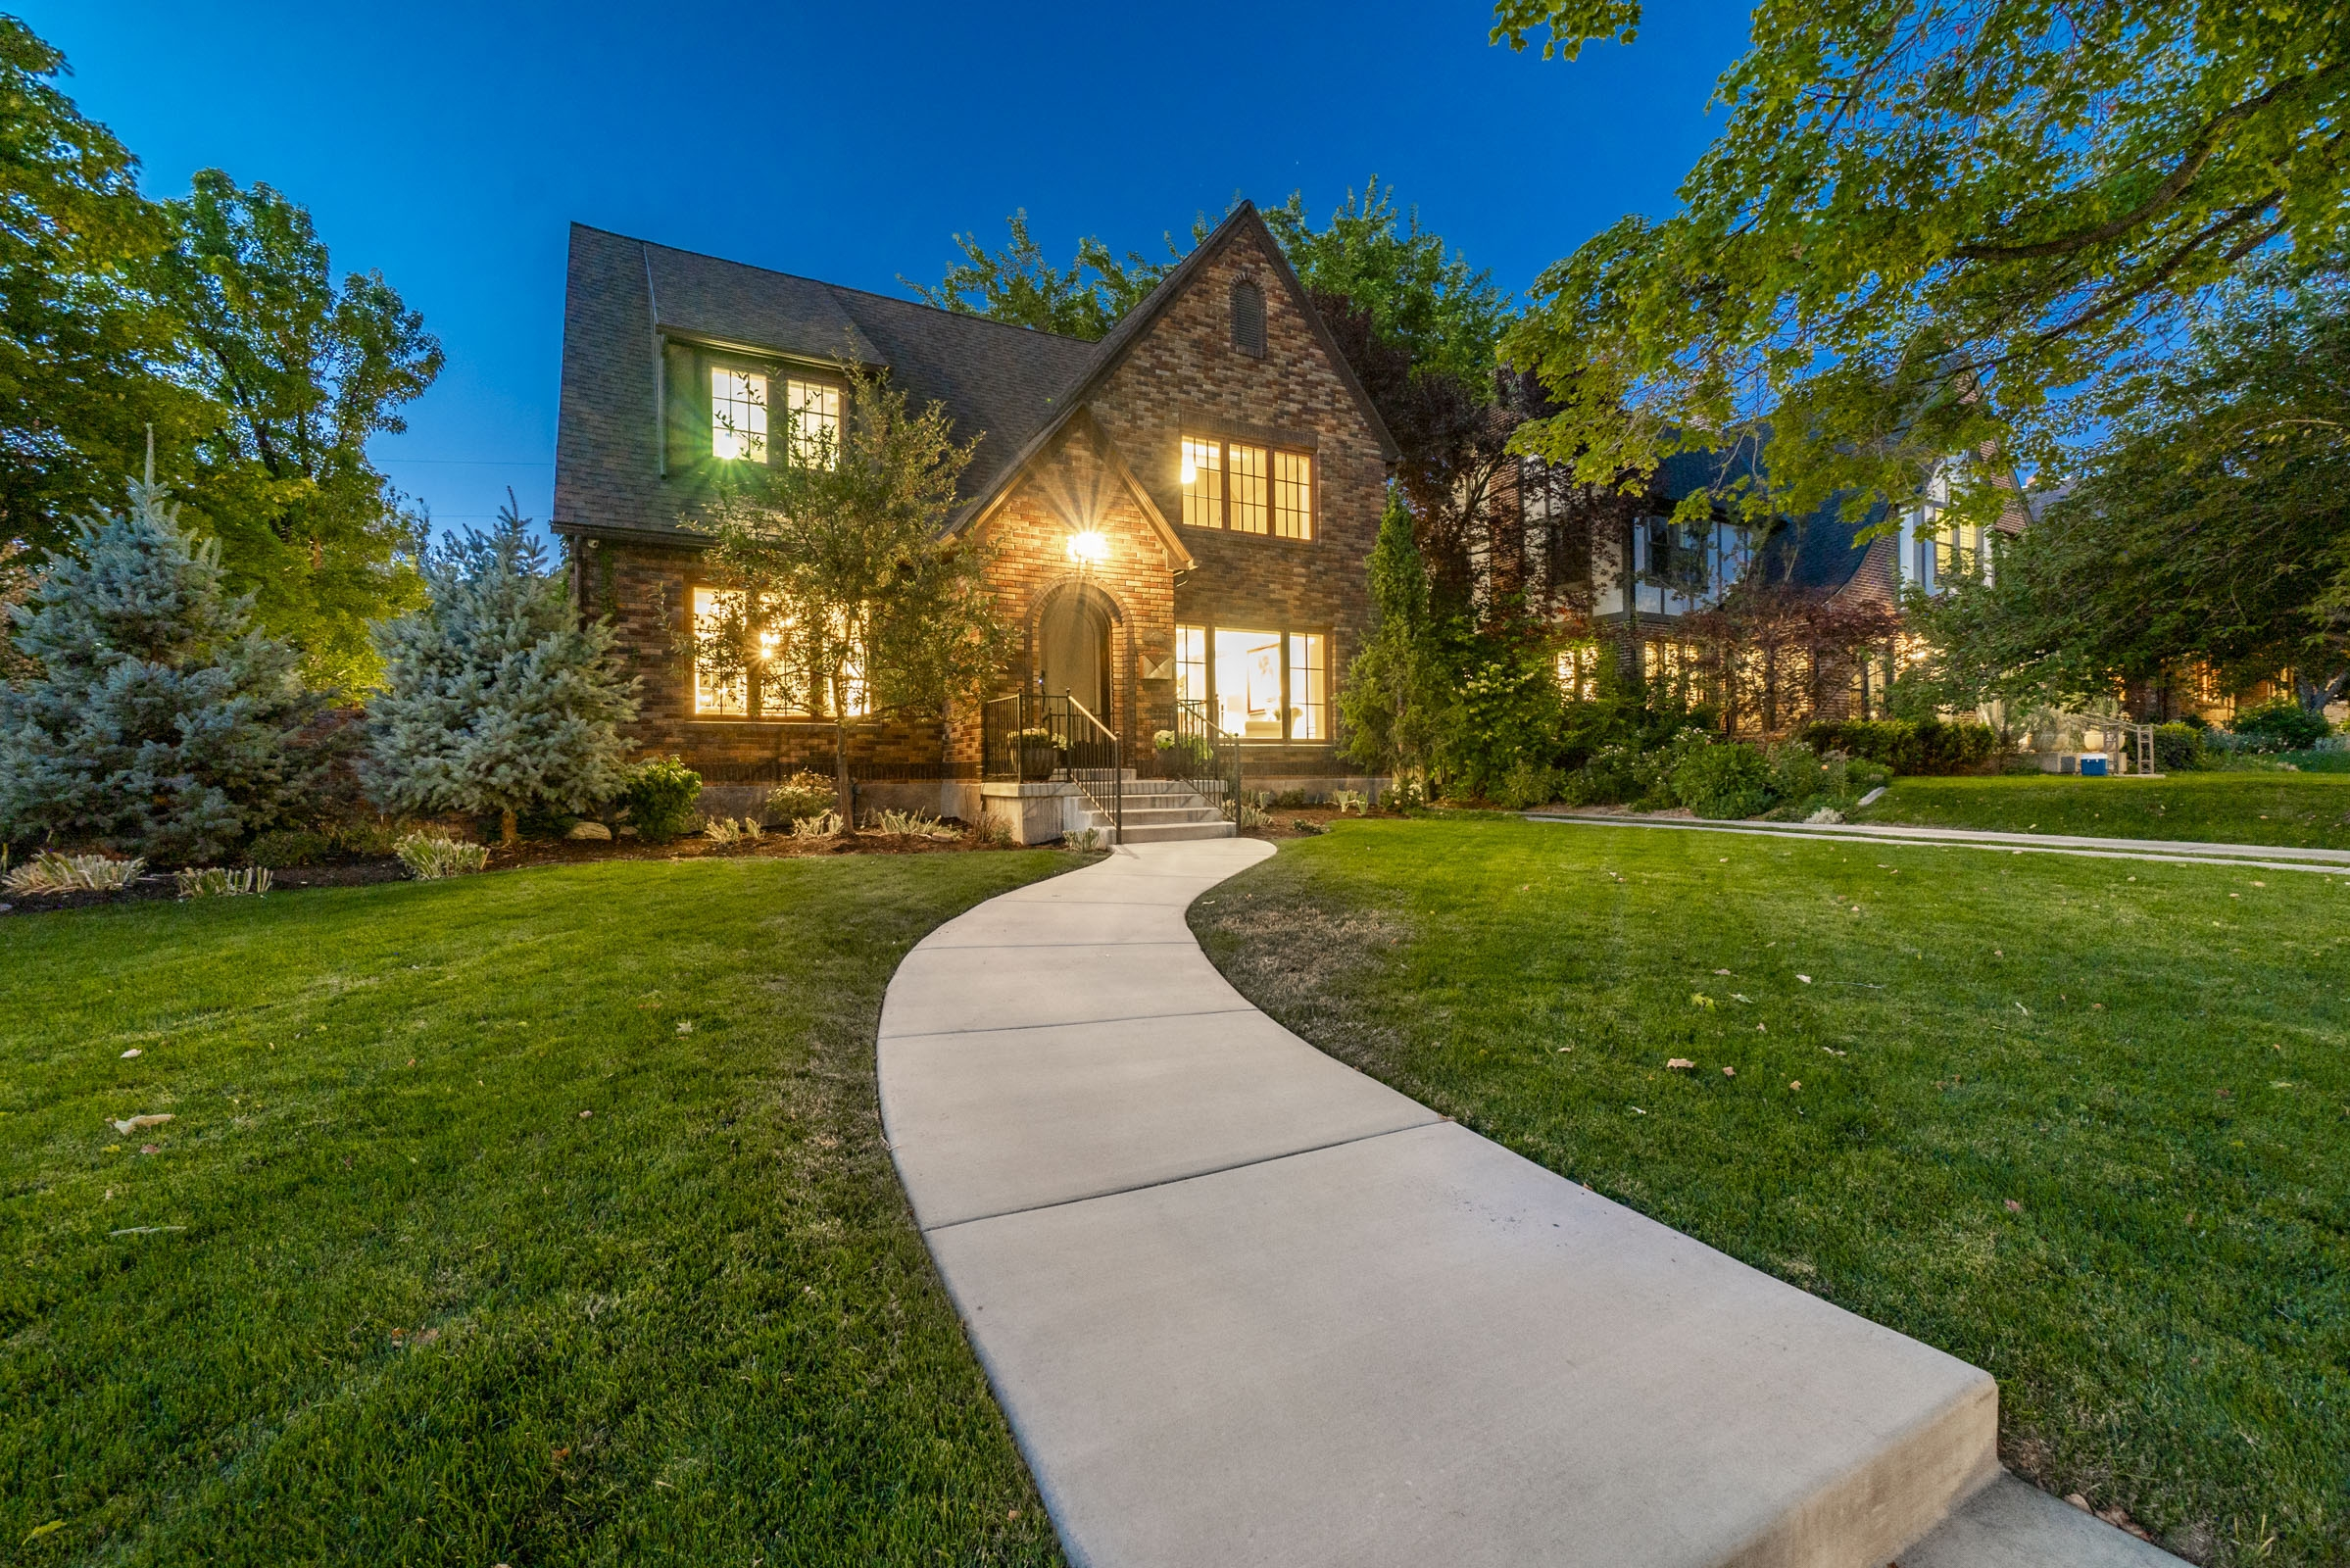 This home on Yale Avenue in Salt Lake City is on the market for $1,290,000. Sales of Utah homes priced $1 million-plus are on a record-breaking pace in 2019.